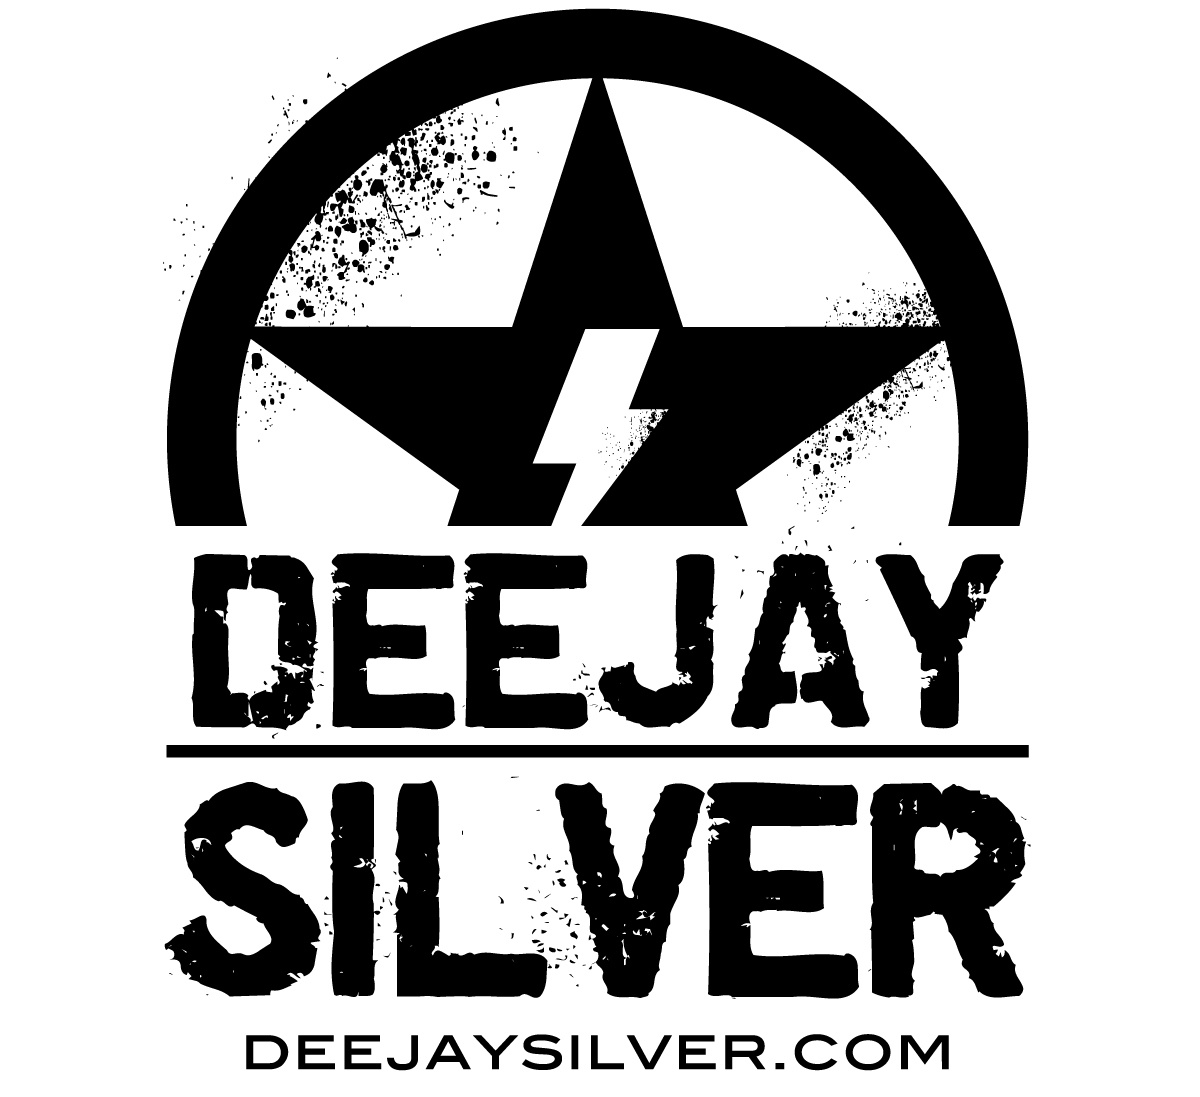 DEEJAY-SILVER-FINAL-WHITE-BACK